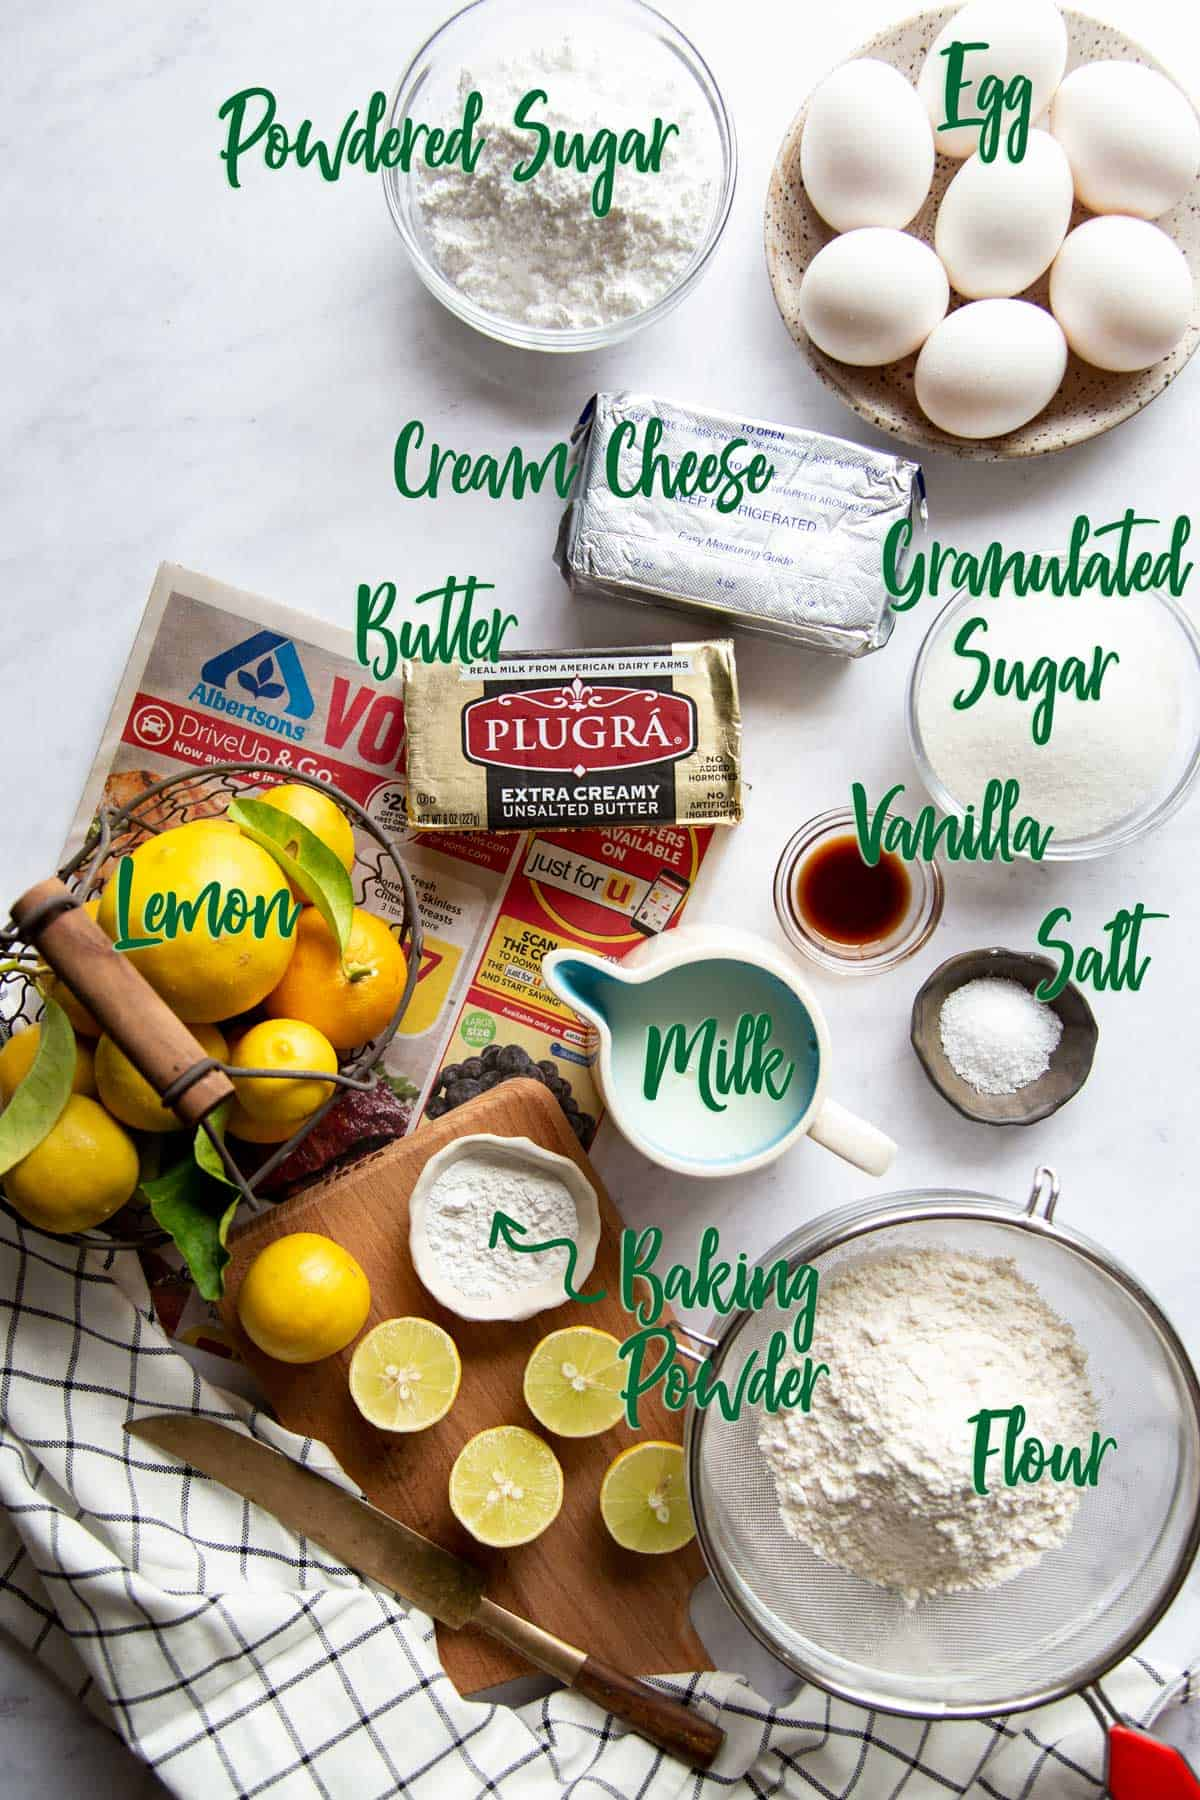 Ingredients laid out on a marble board with text overlay